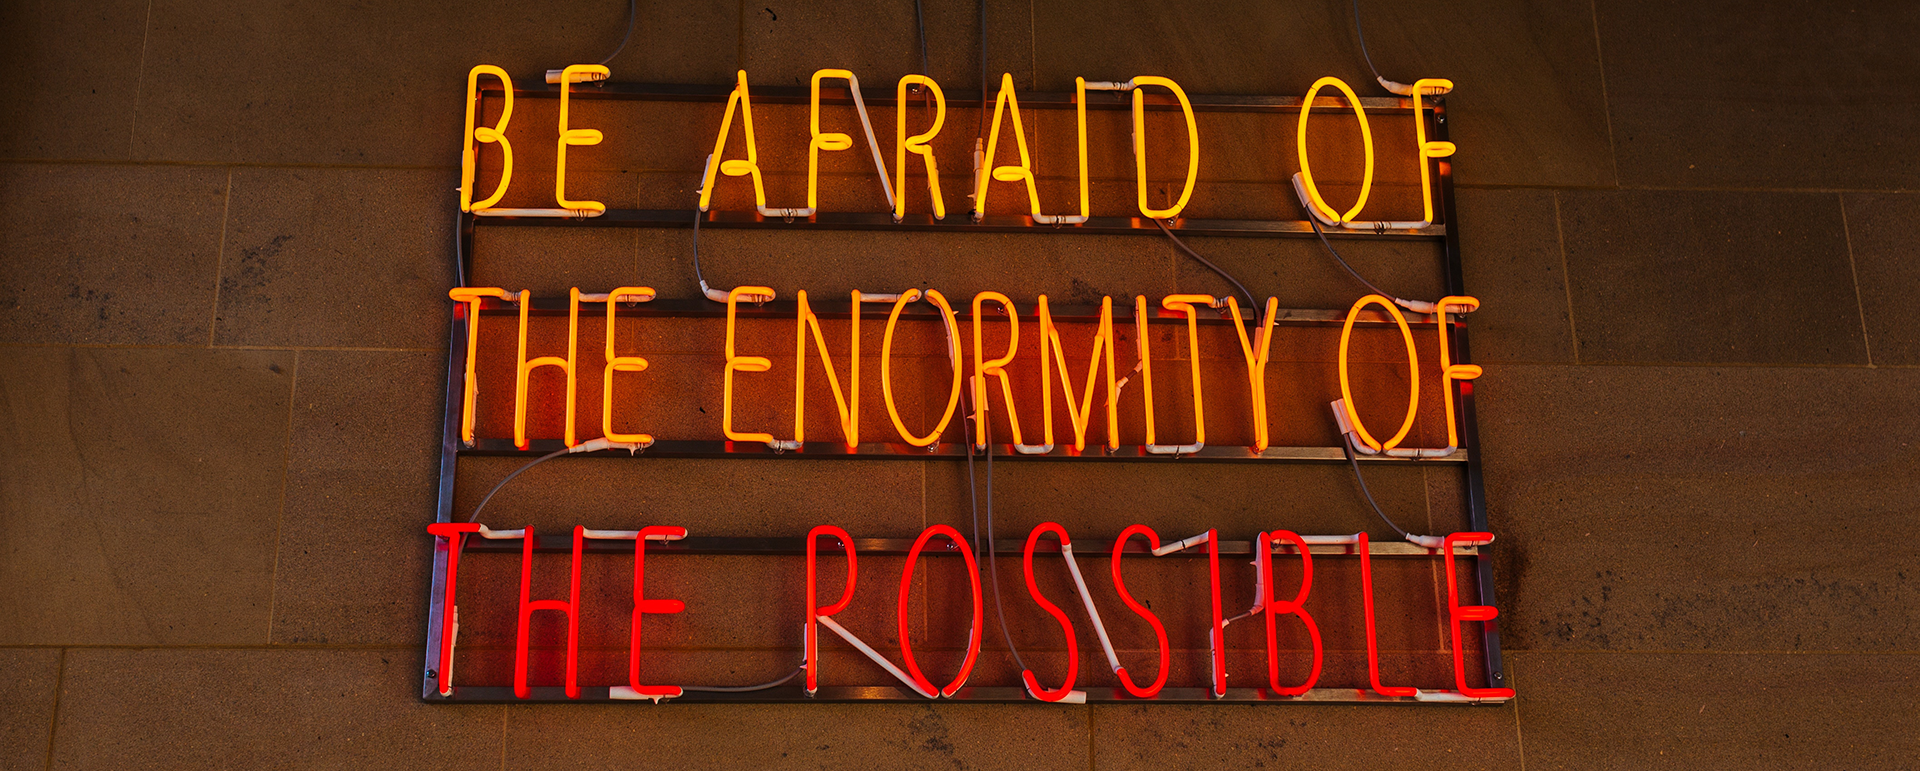 Neon light about the enormity of the possible